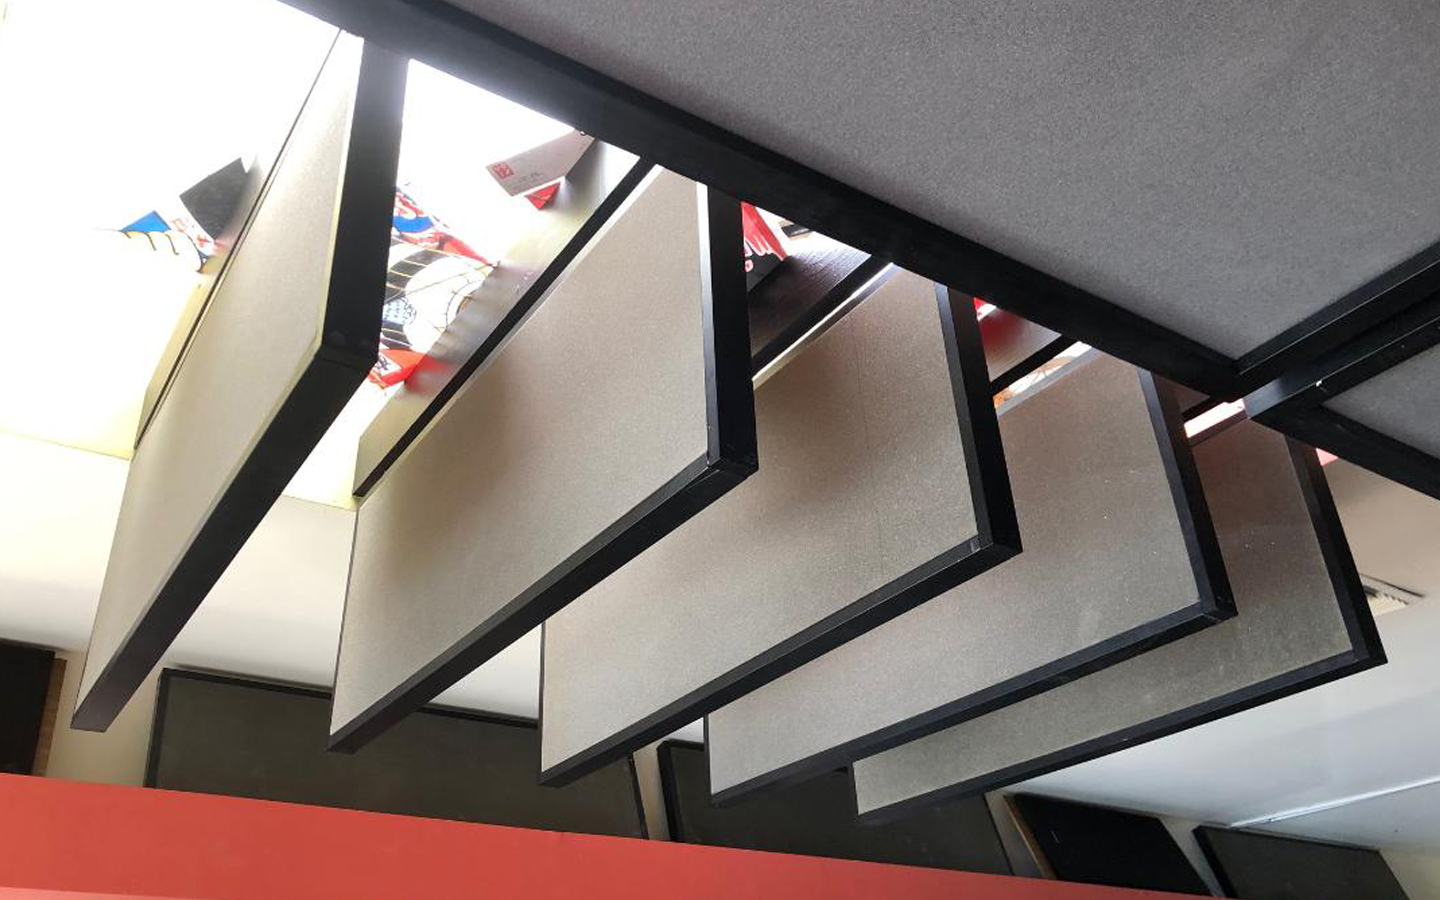 Ceiling Foam Panels: What You Need To Know